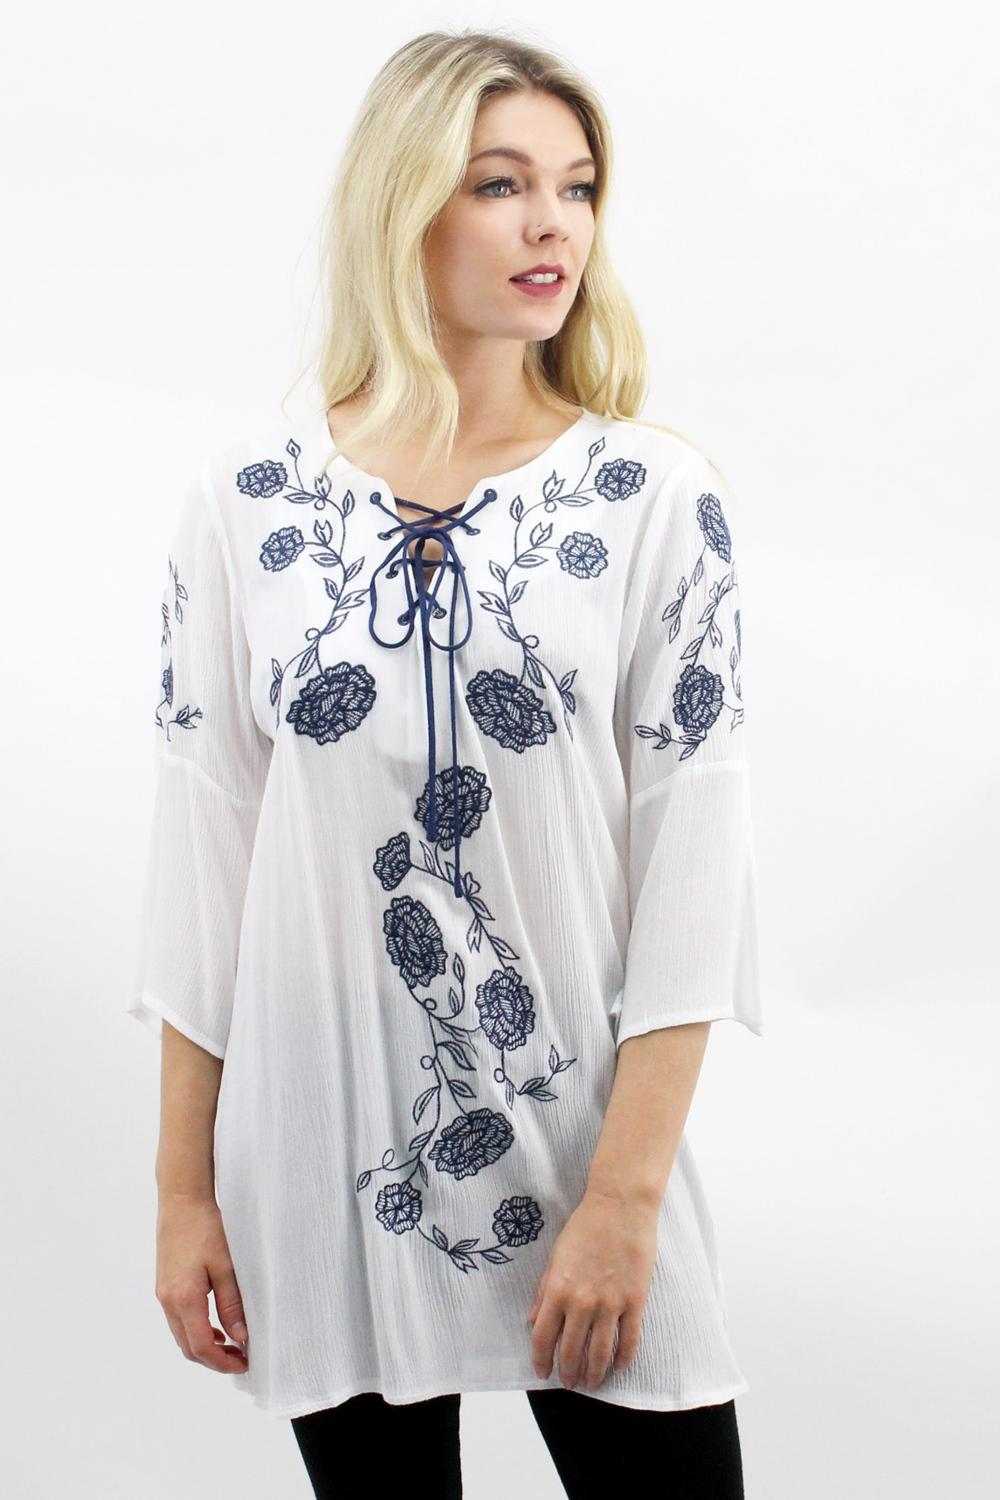 Embroidered  White Floral Top